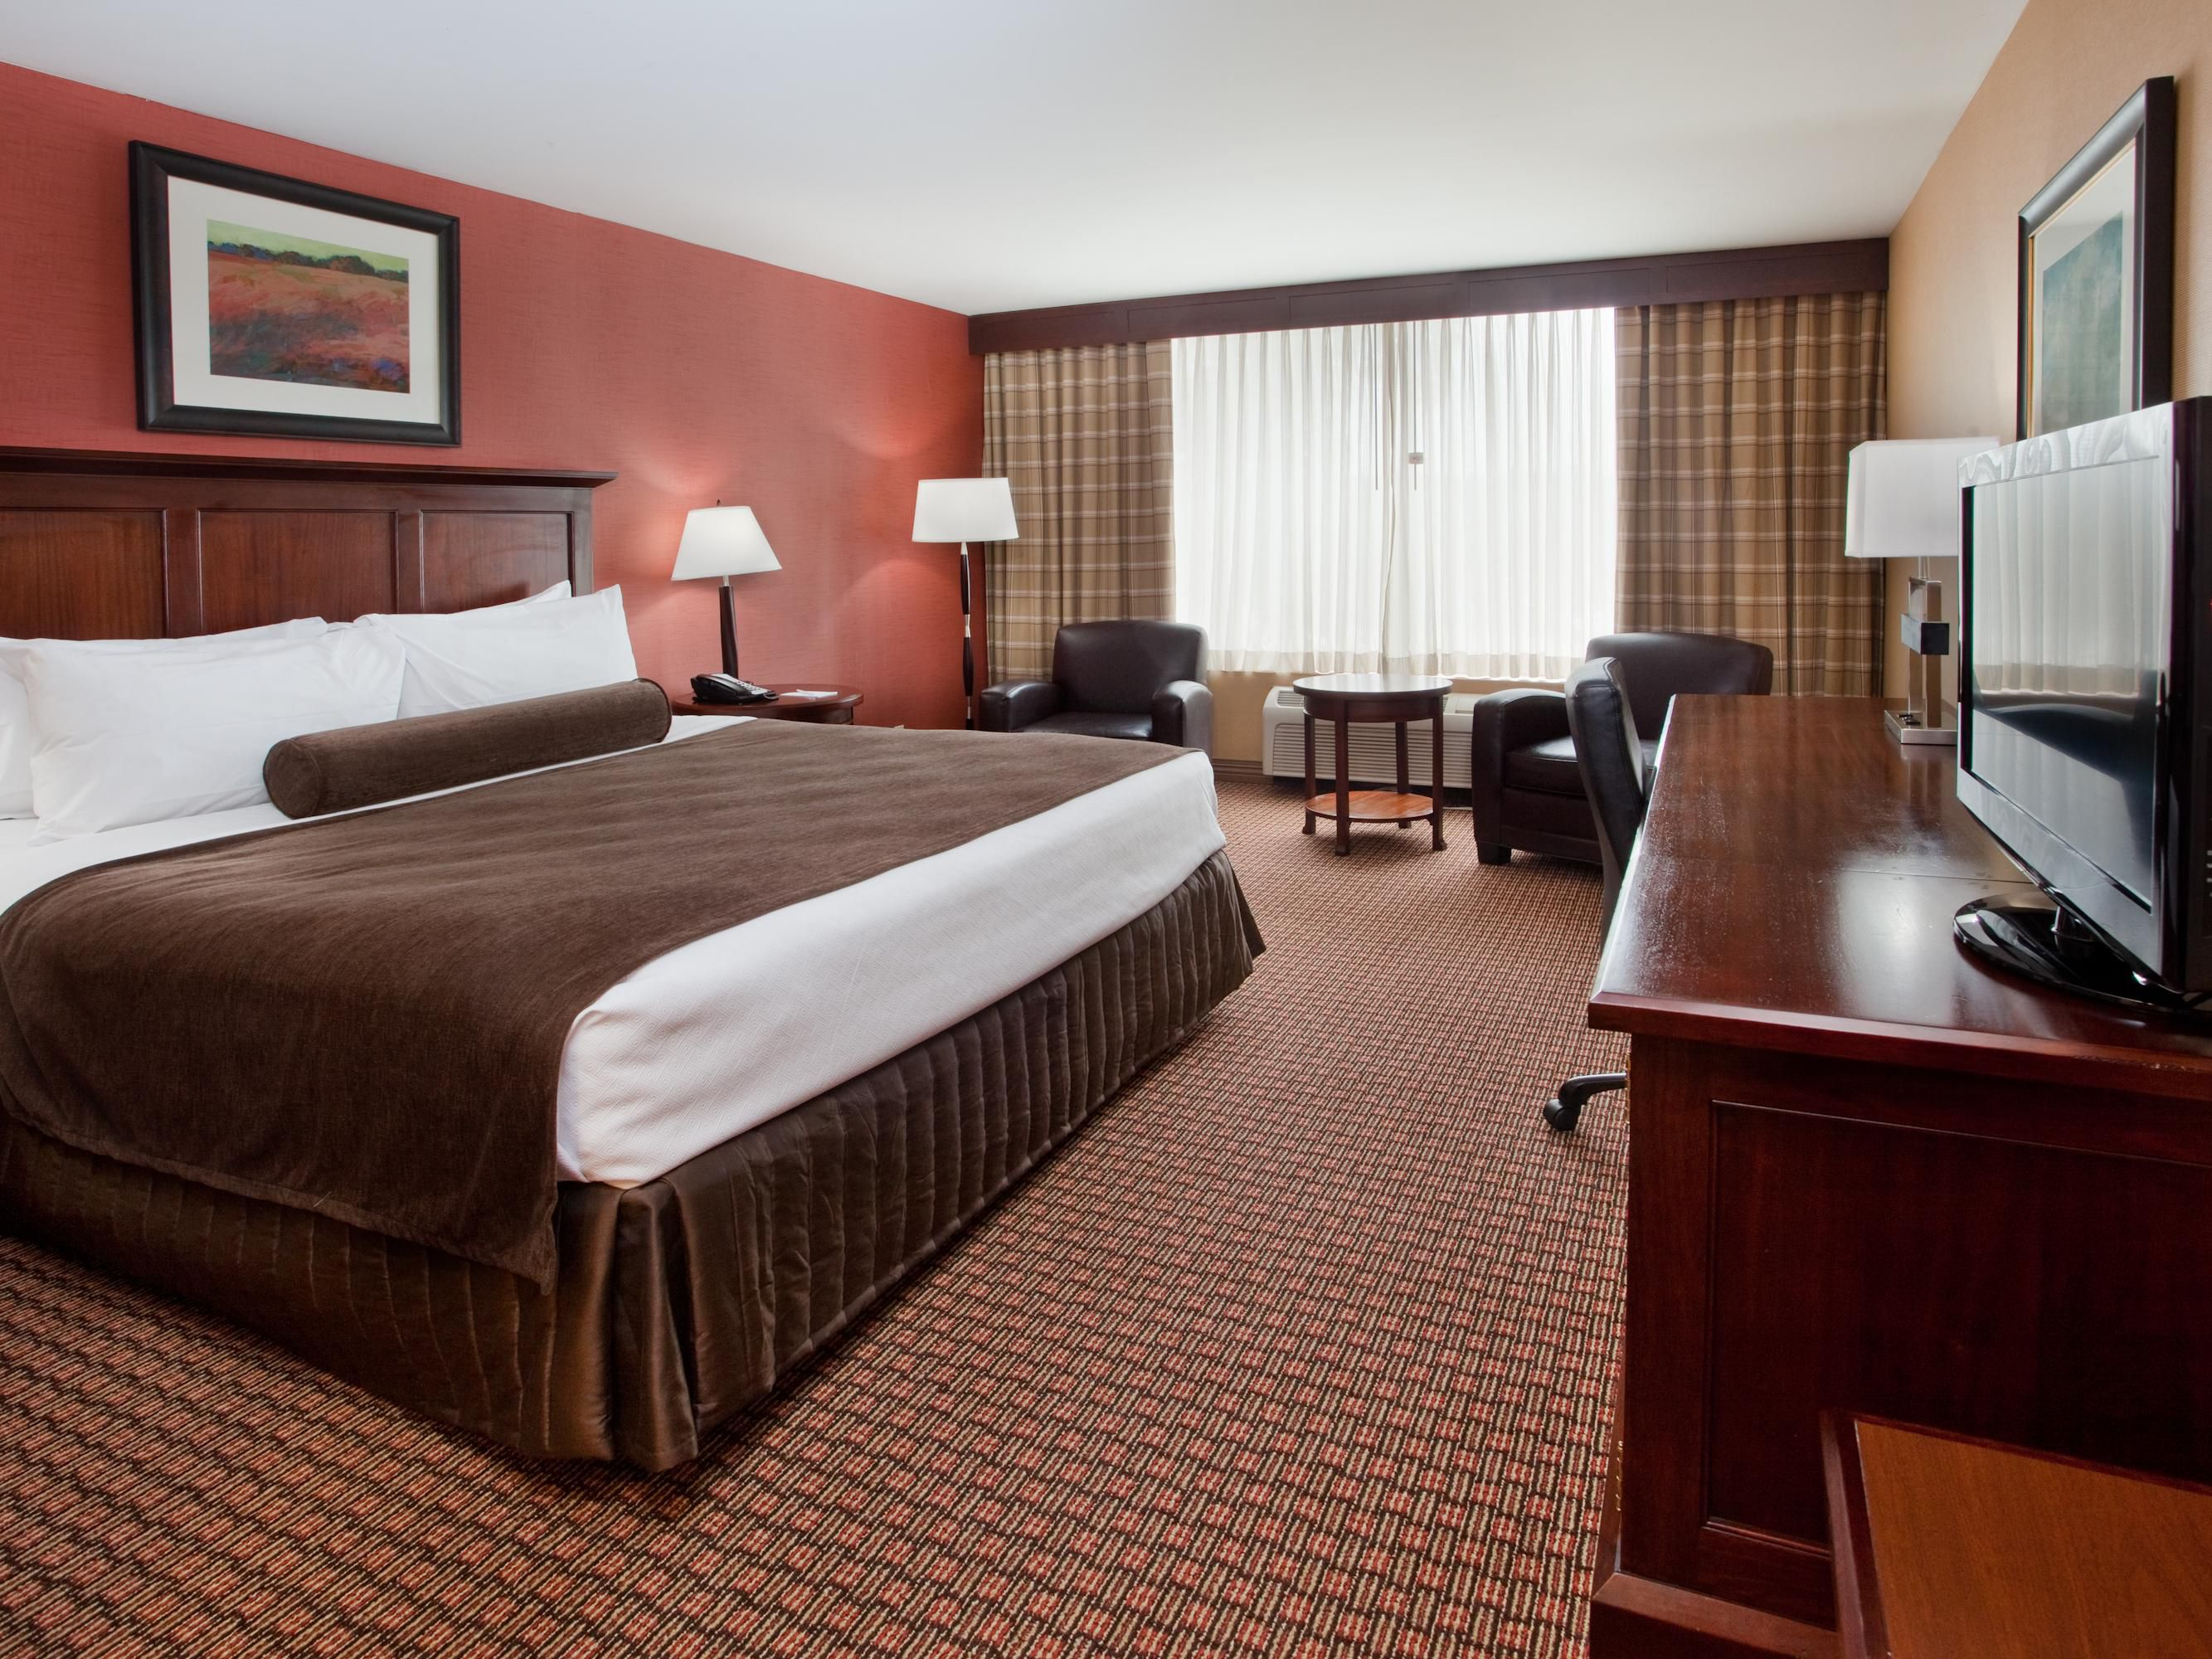 Ihg Crowneplaza Ponents Photogallery Roomphotos Primary